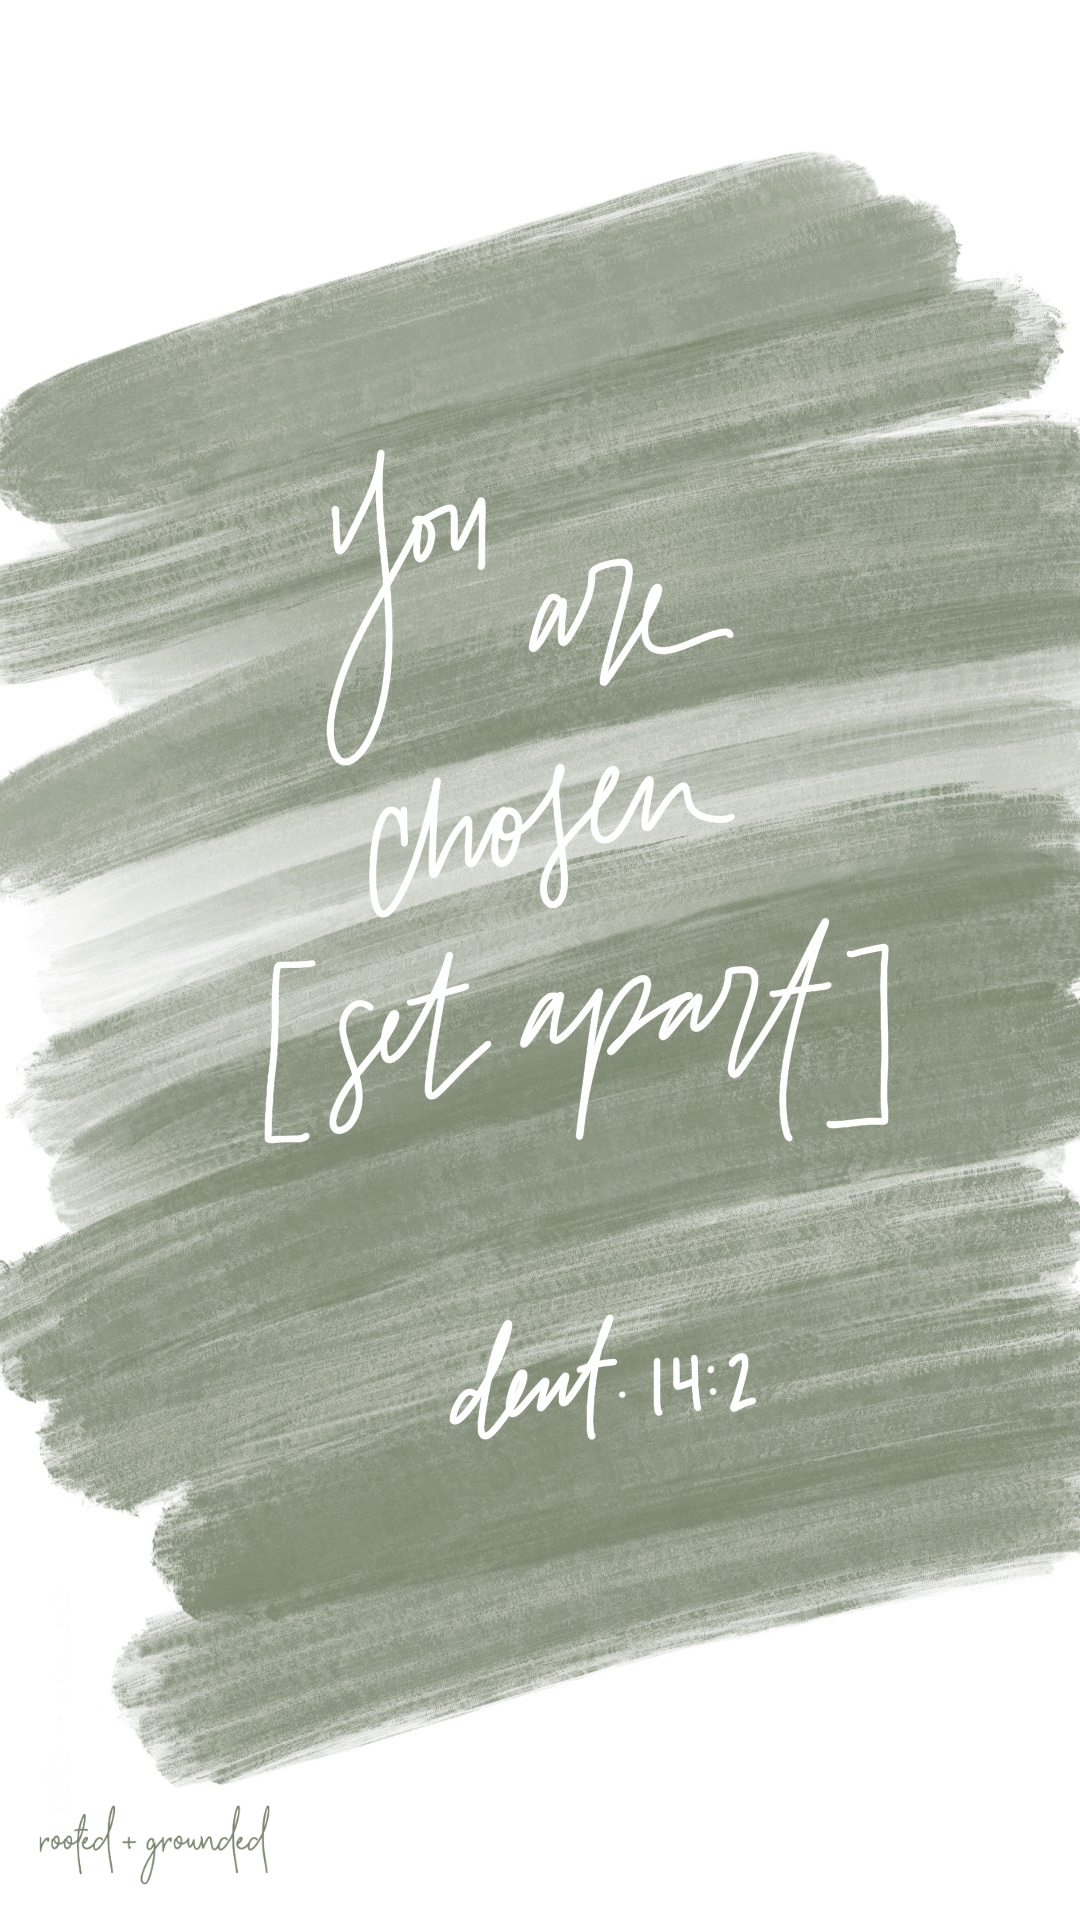 You are chosen set apart Christian iPhone Wallpaper